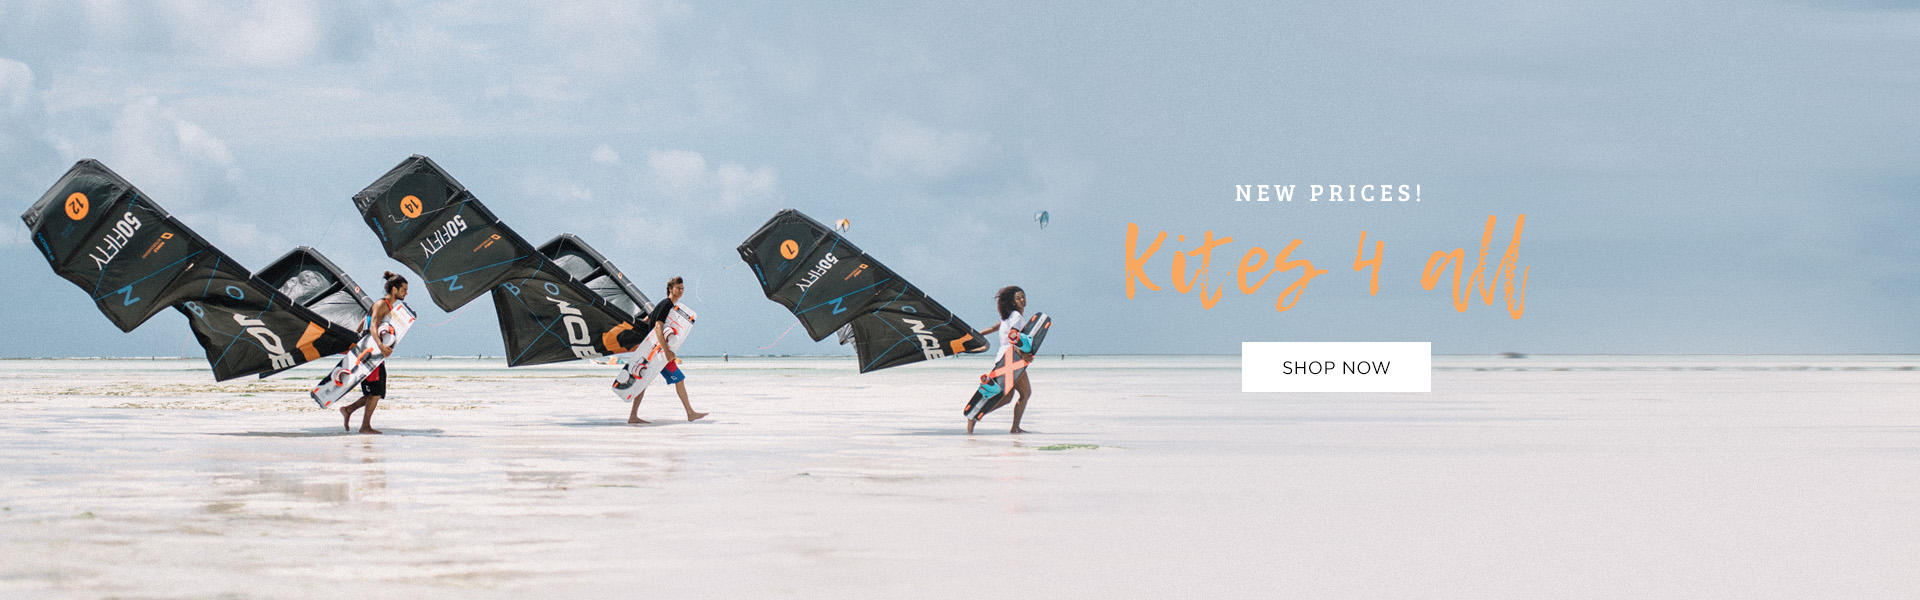 Kite 2017 new price